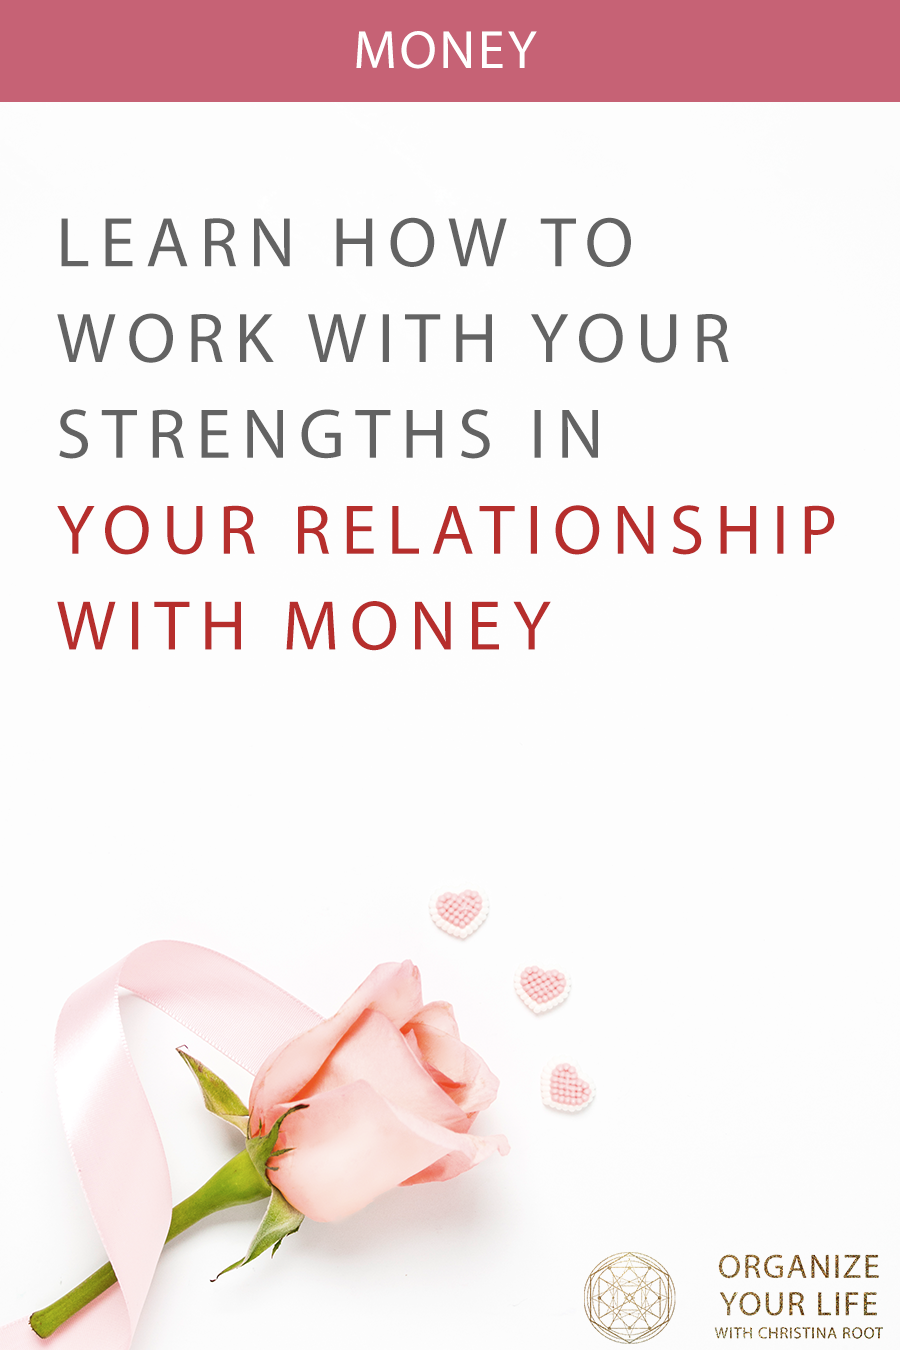 Getting intimate with money: Learn how to work with your strengths